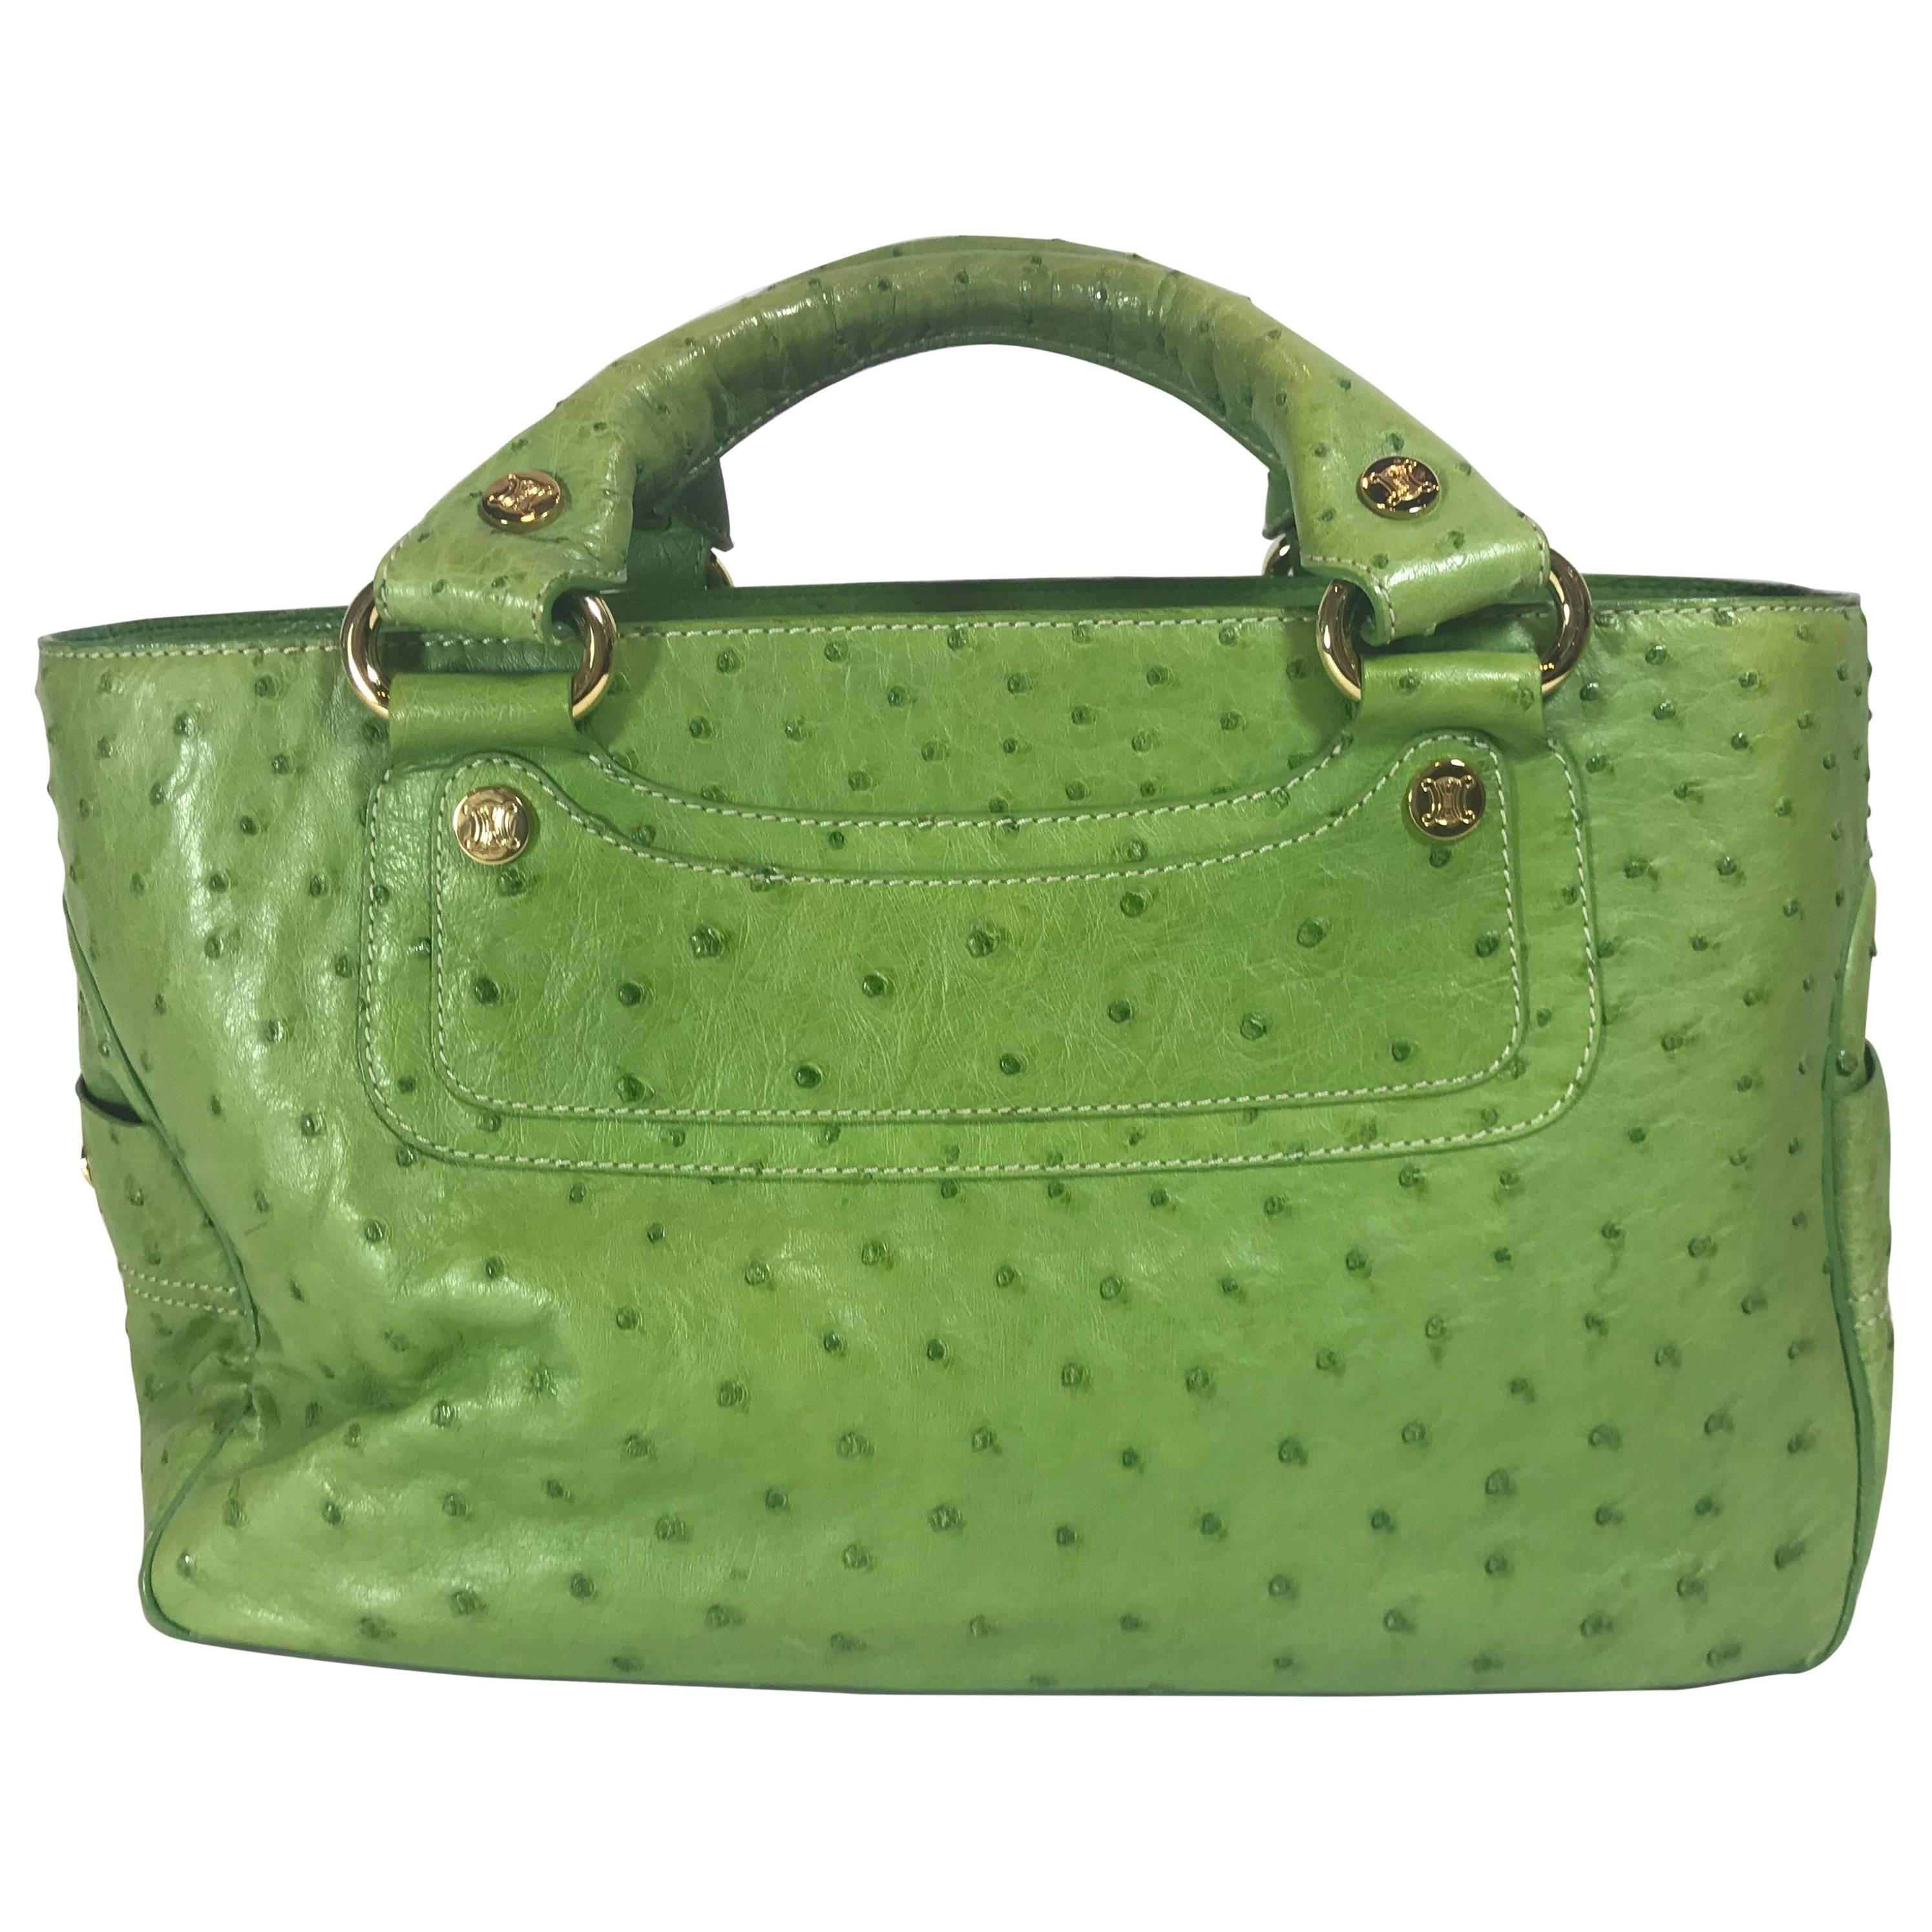 1stdibs Celine Green Patent Leather Satchel With Shoulder Strap With Silver Hardware ieJqjzZ